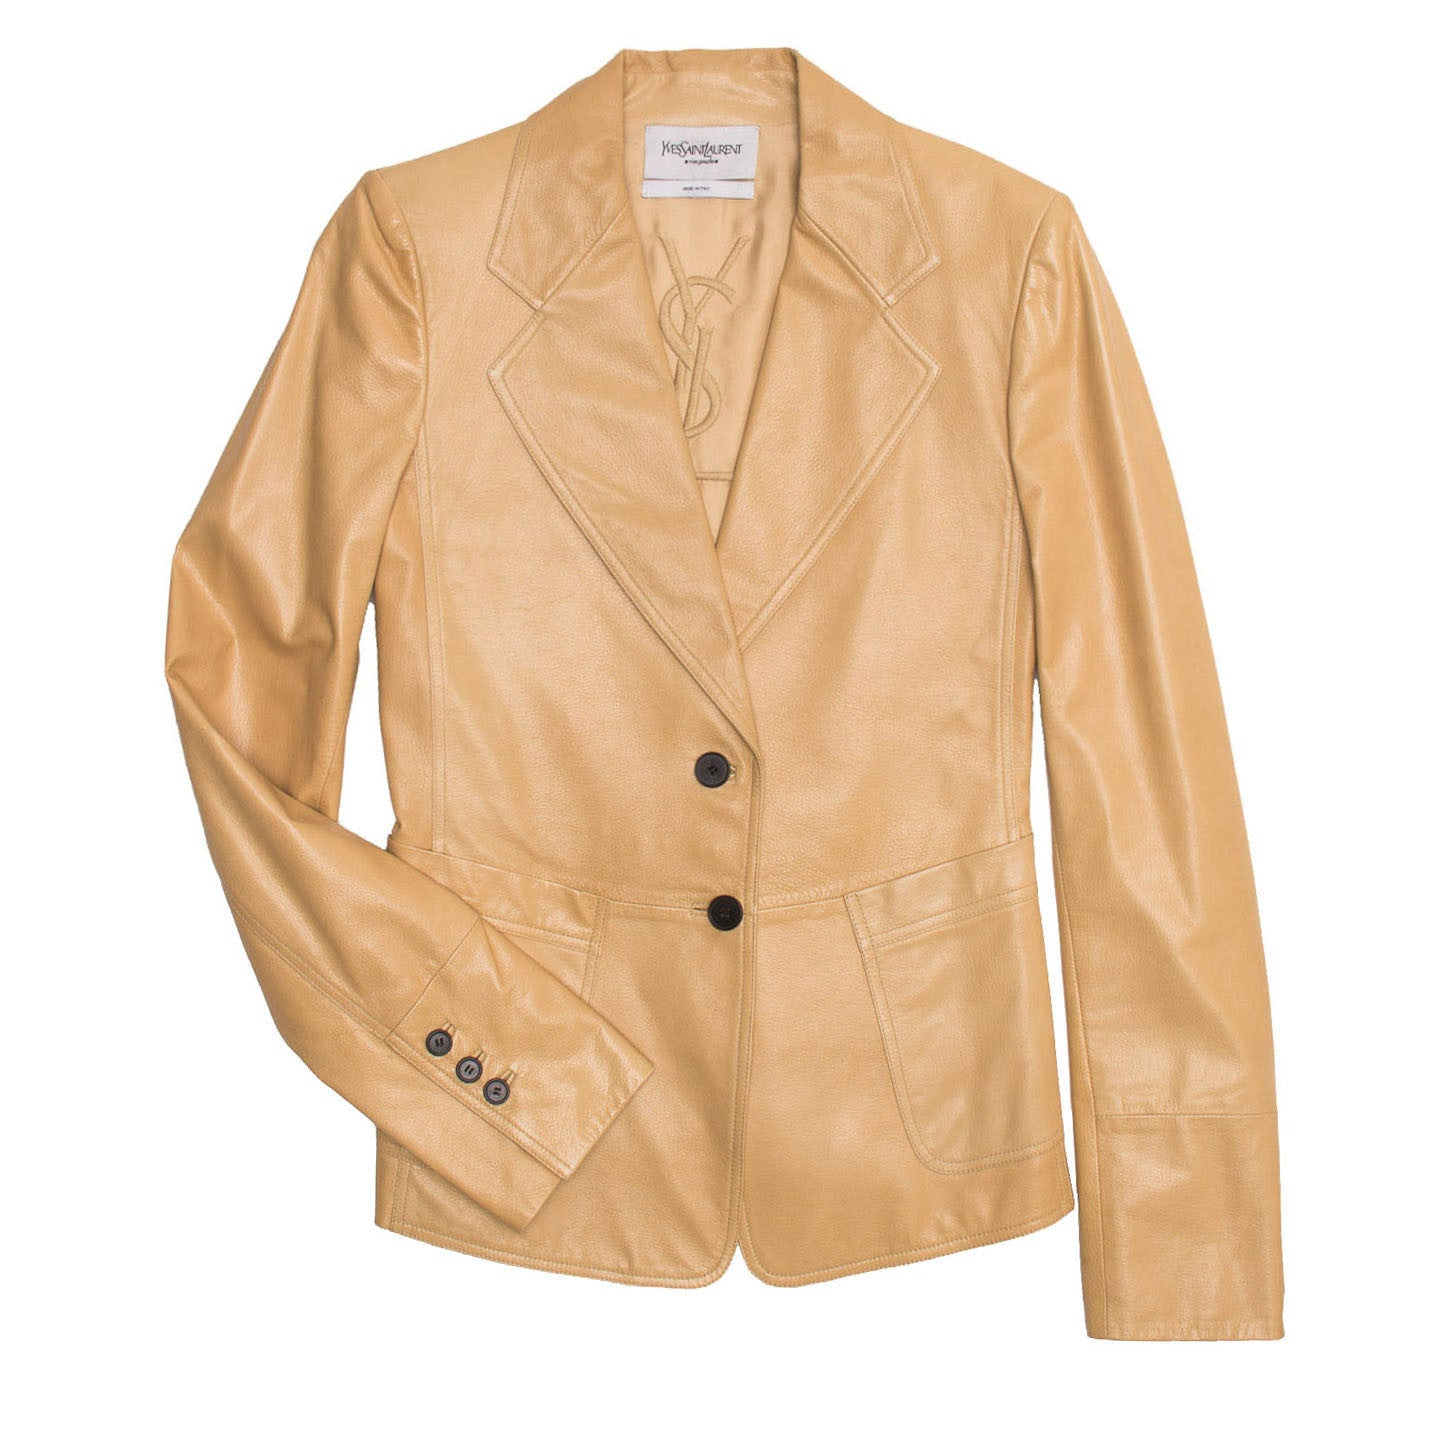 YSL Tan Leather Fitted Blazer, Size 40 (French)